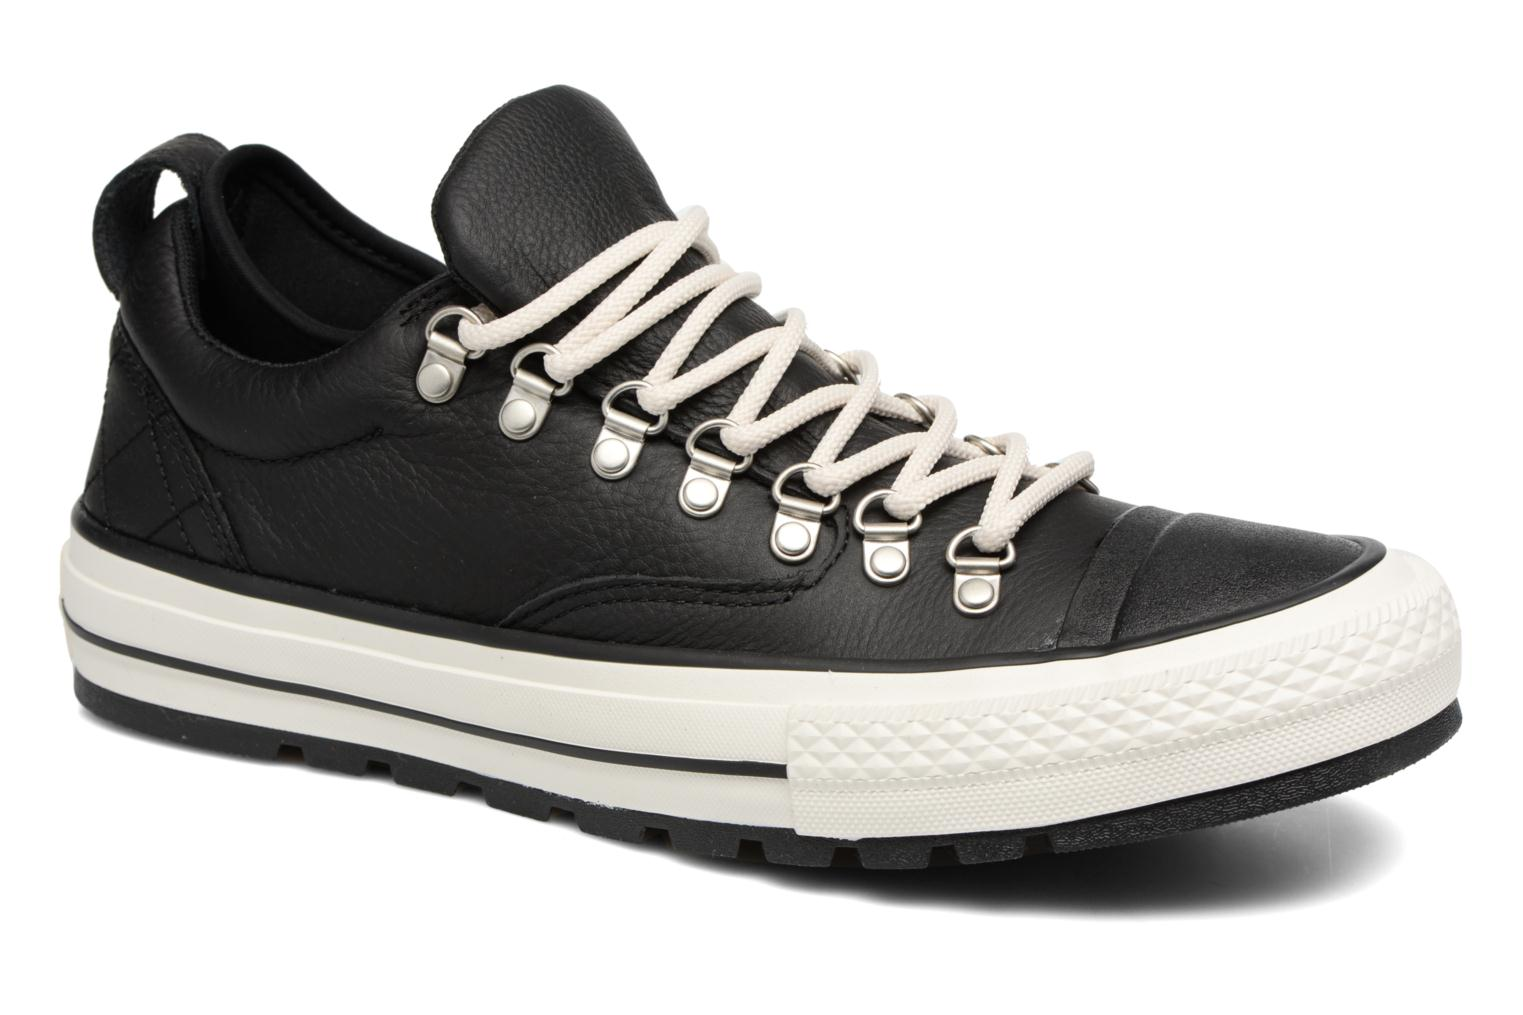 converse chuck taylor leather ox m